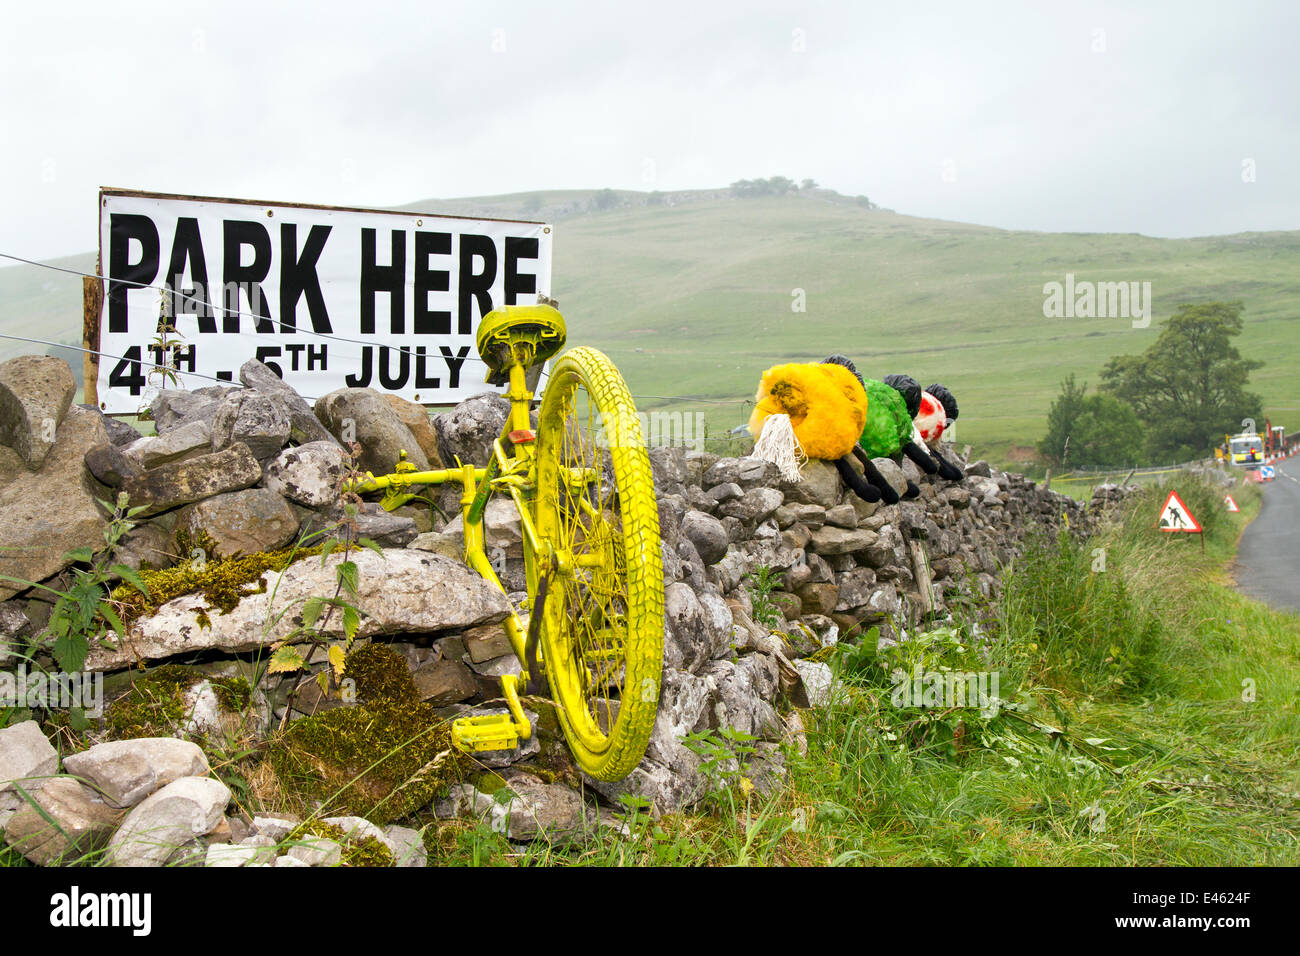 Kilnsey en-route to Kettlewell,  Yorkshire Dales, UK 3rd July, 2014.  Cycle imbedded in stone wall a decorations Stock Photo